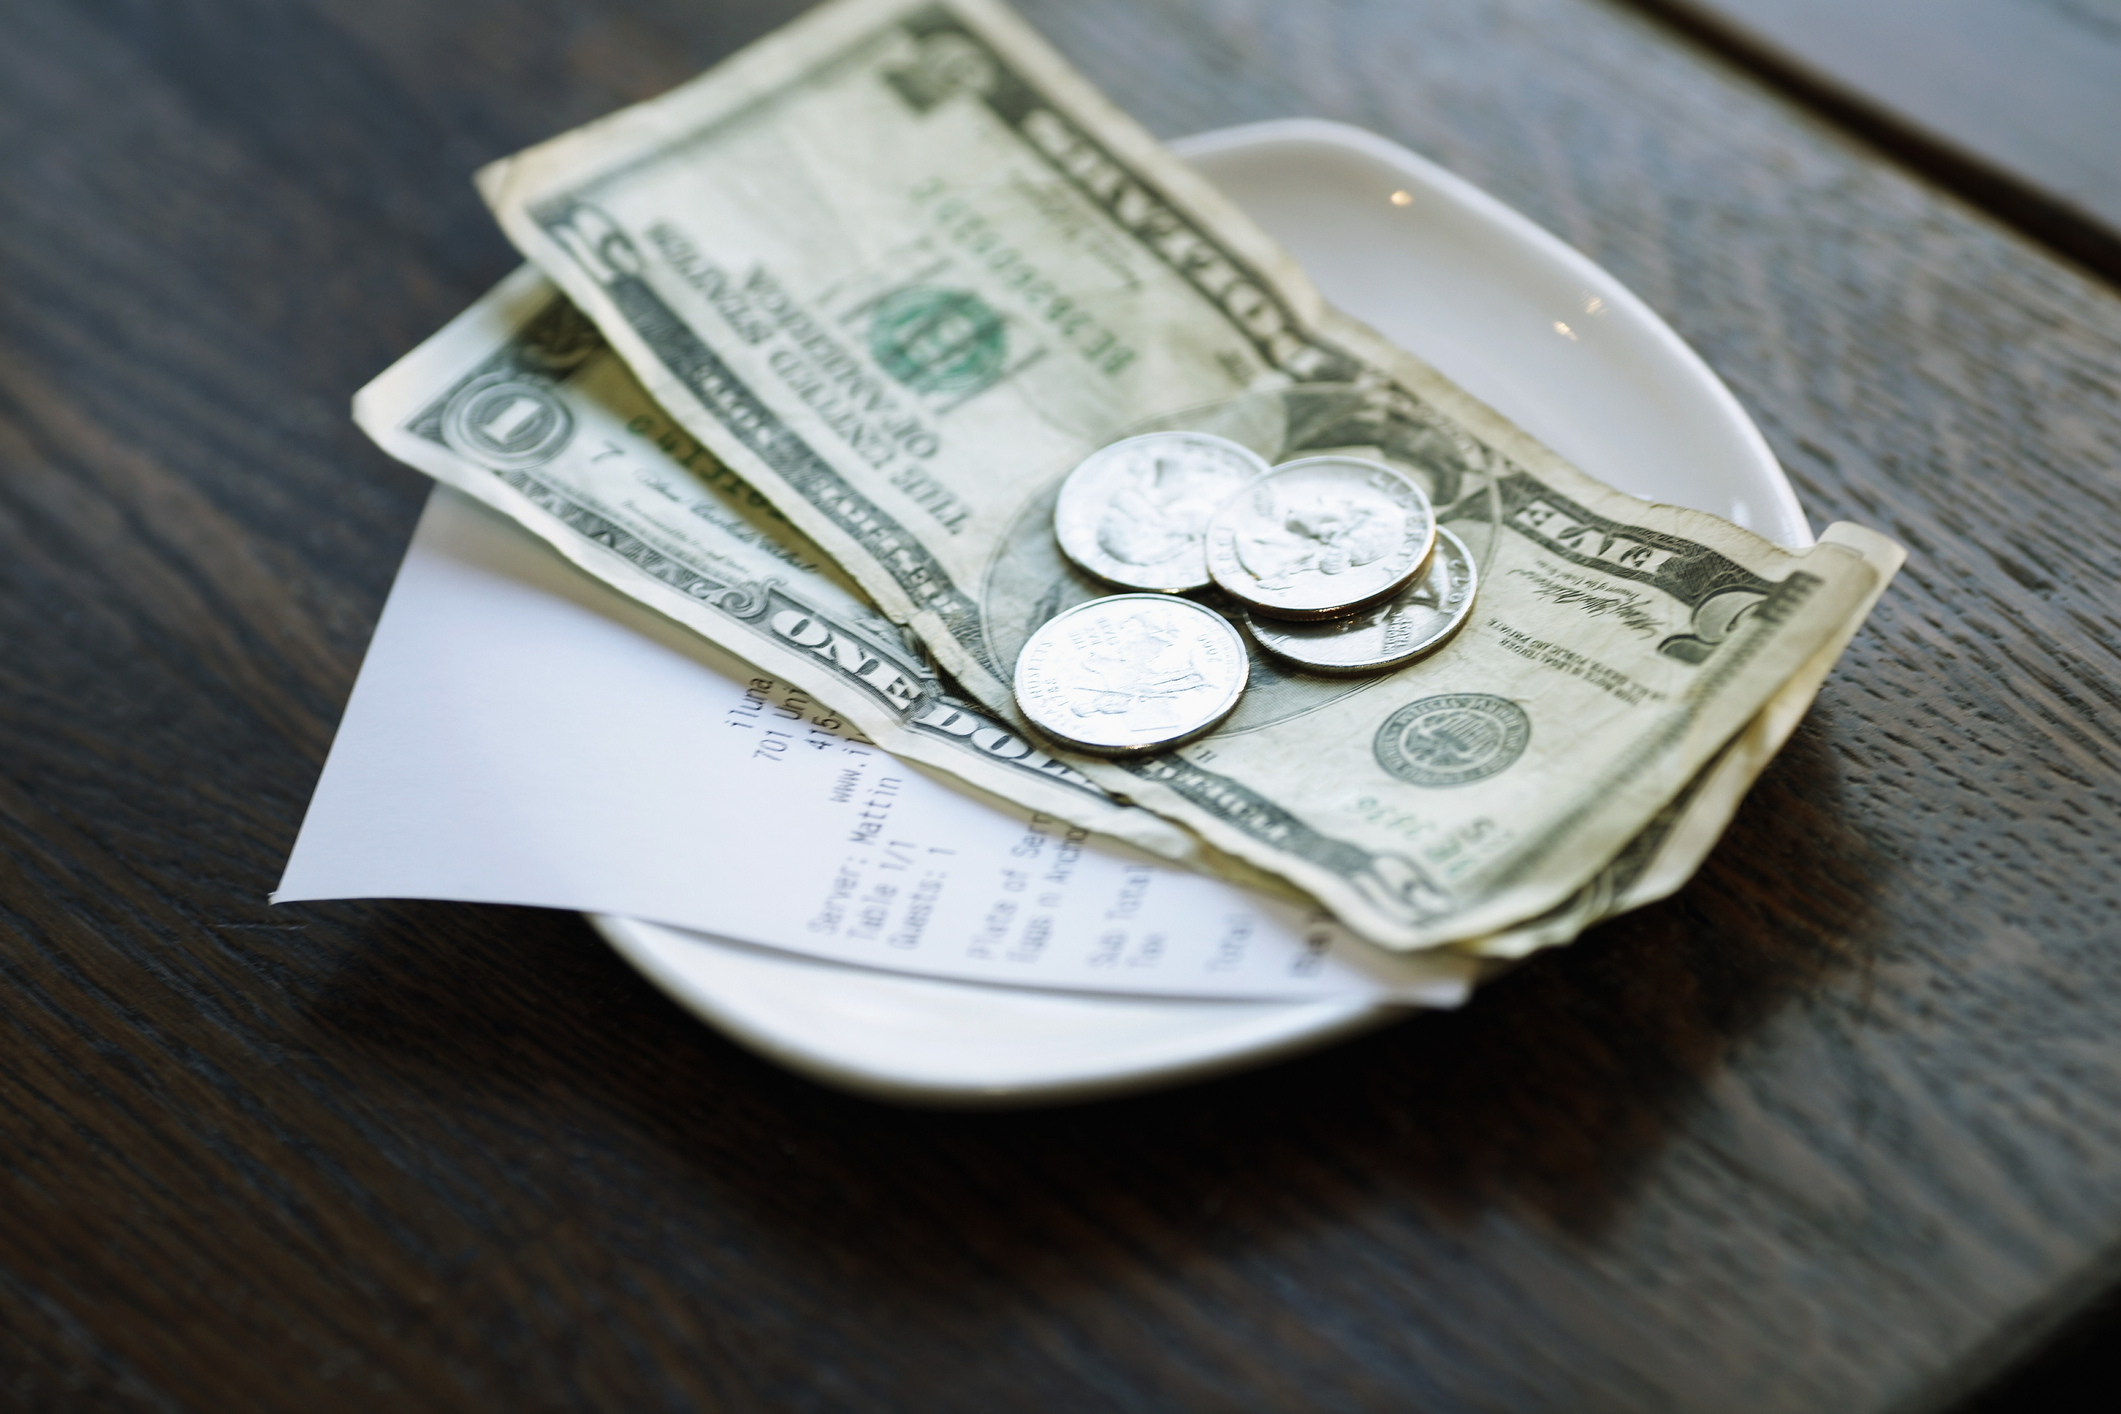 A definitive guide to tipping at restaurants, because we know you have questions